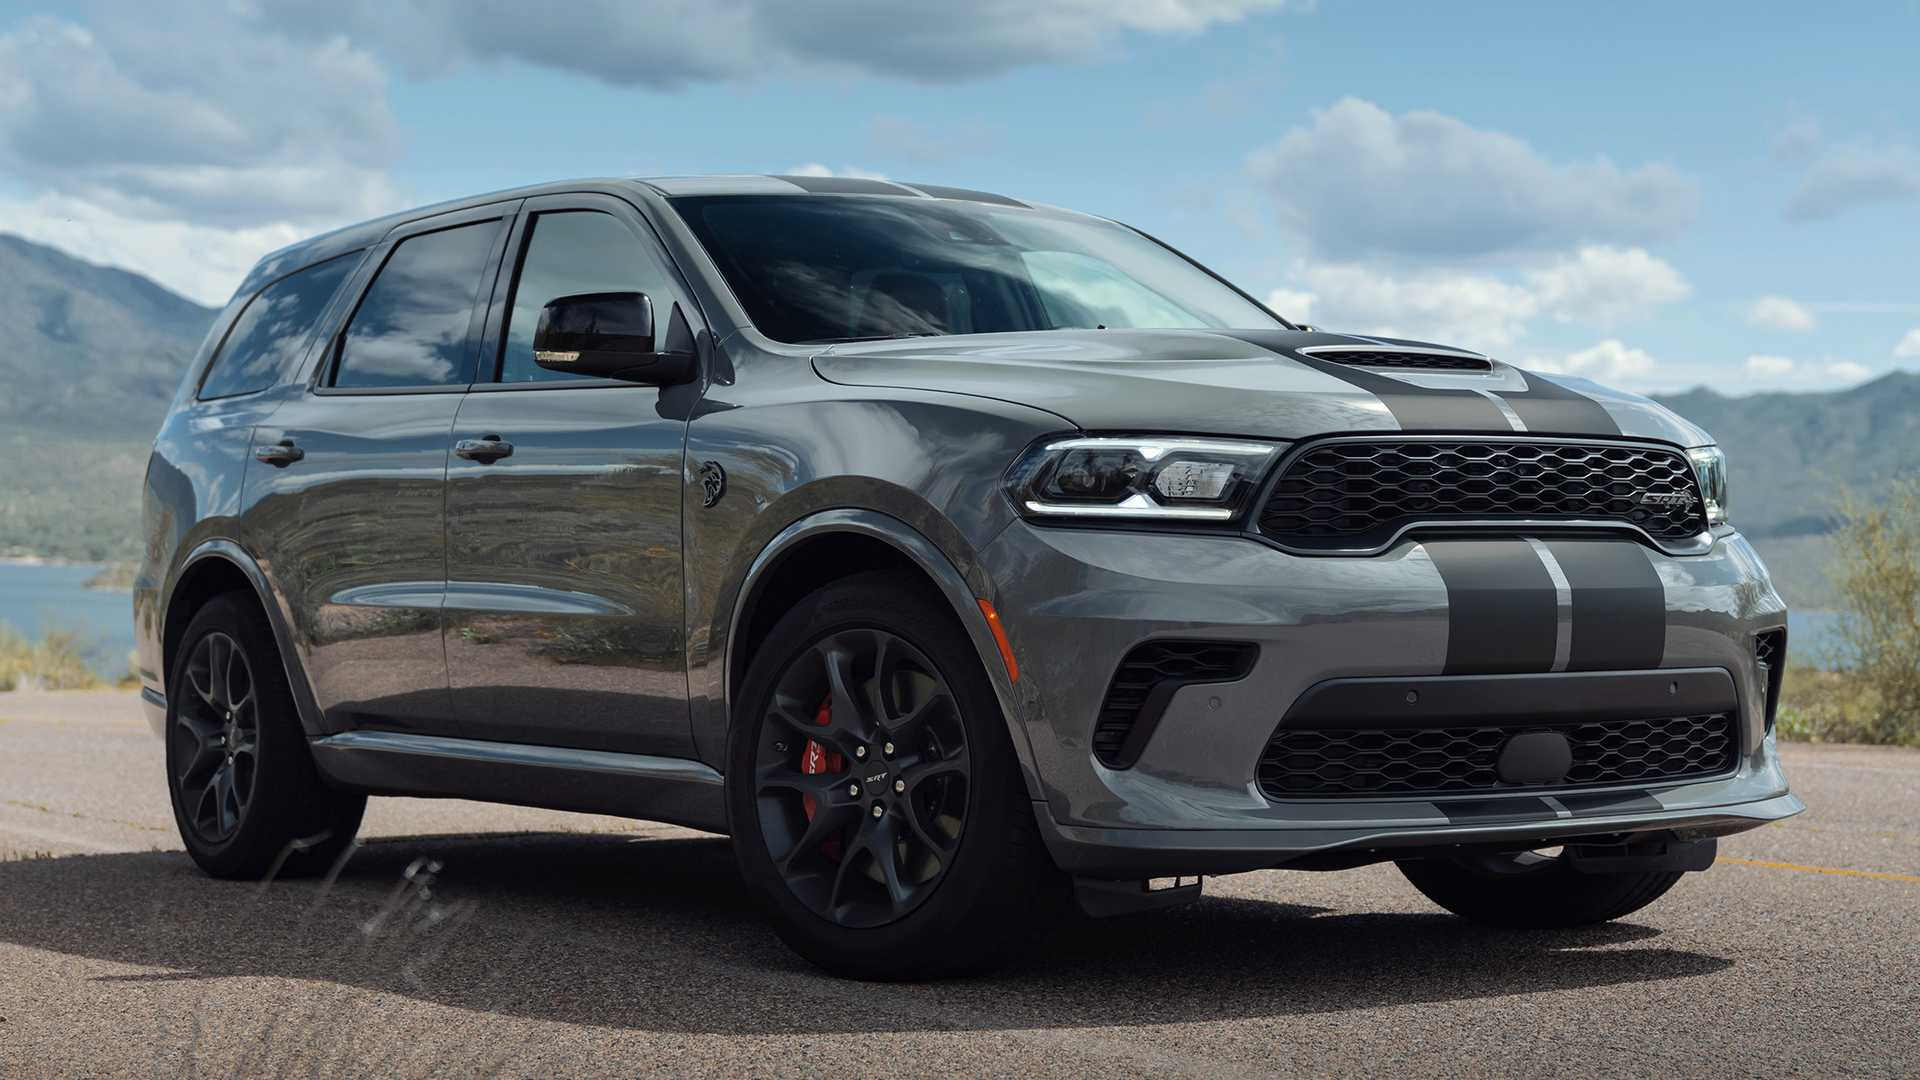 Dodge Durango SRT Hellcat Orders Closed As It Gets Sold Out Completely For 2021